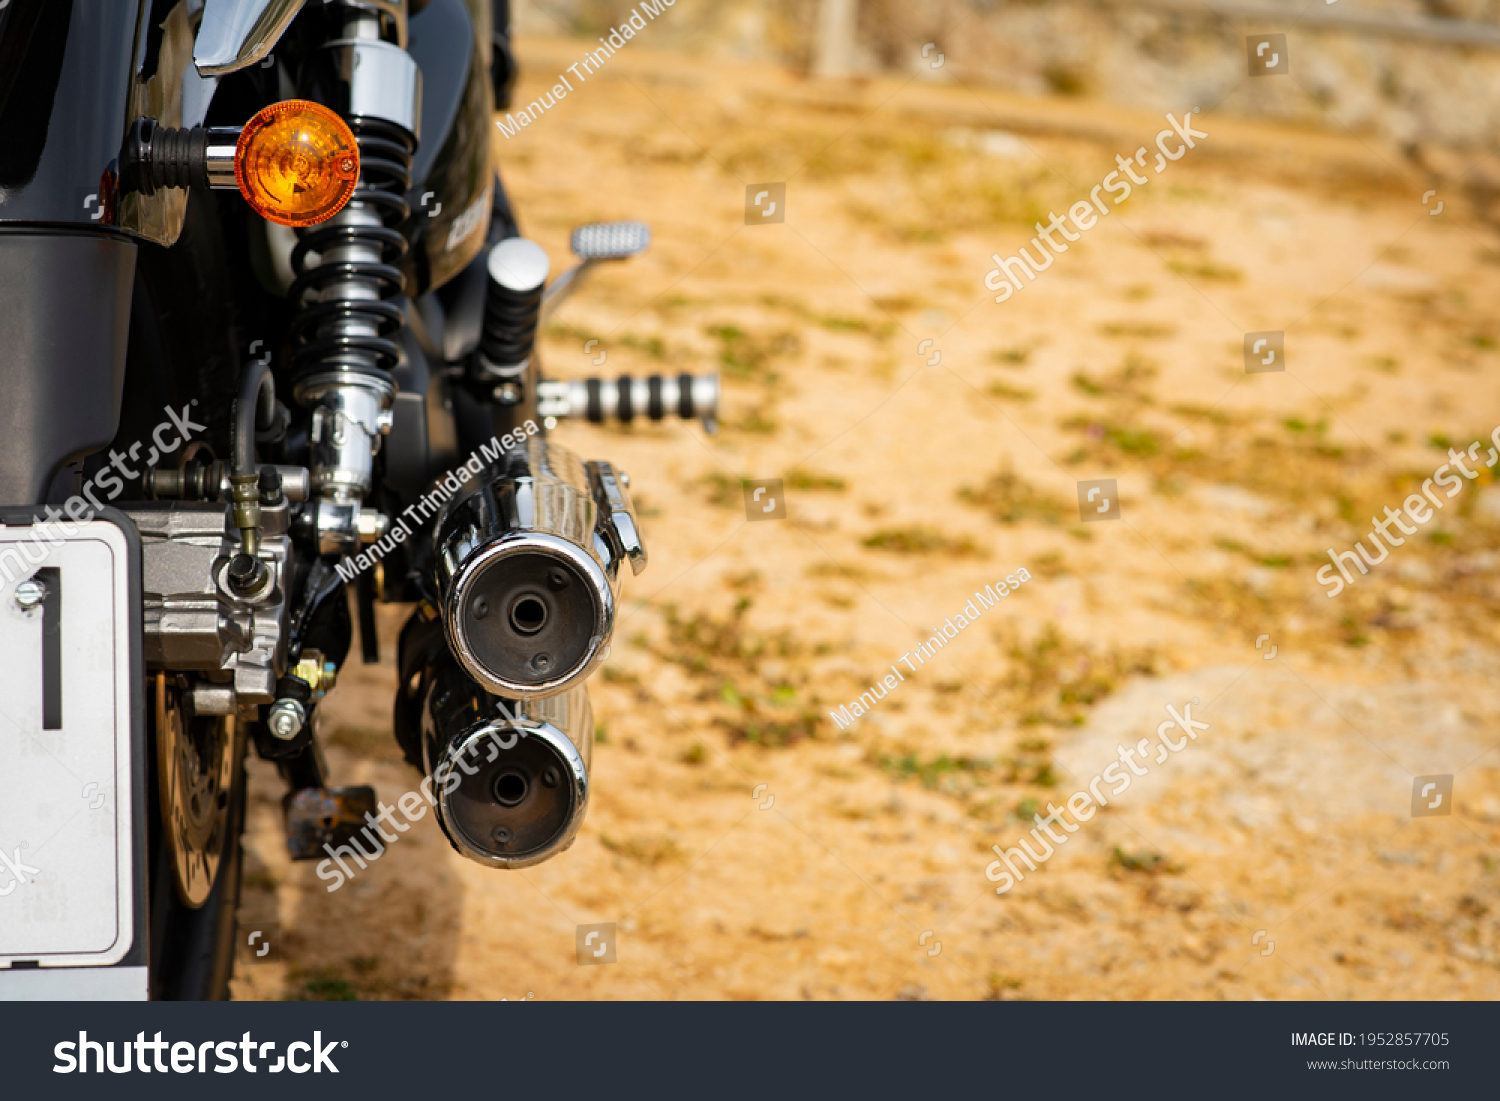 Exhaust pipe and intermittent of a motorcycle